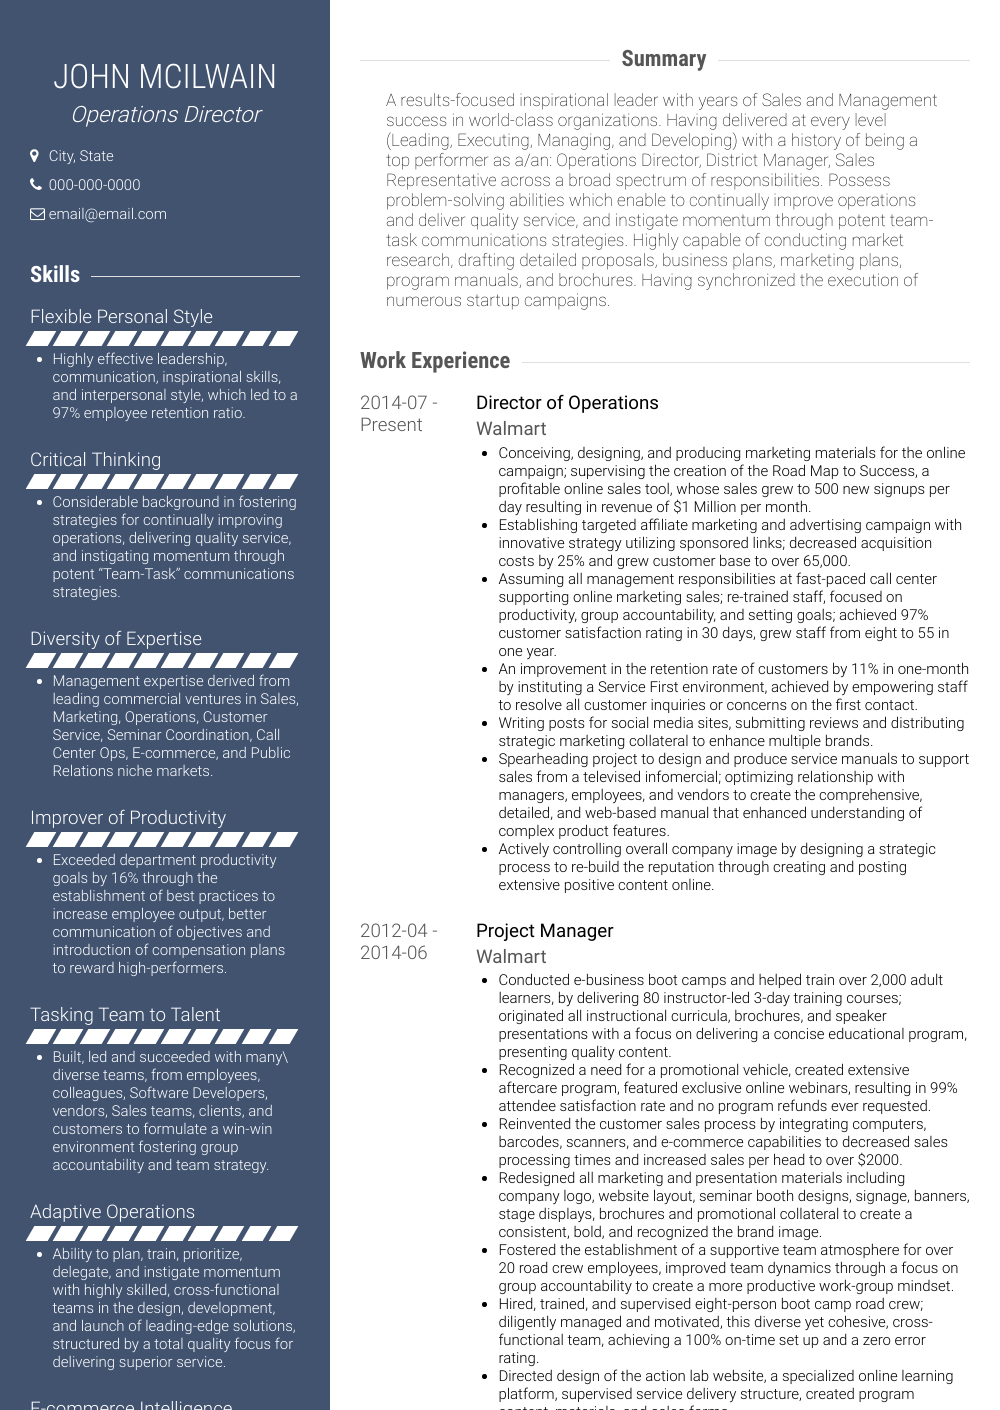 Operations Director Resume Sample